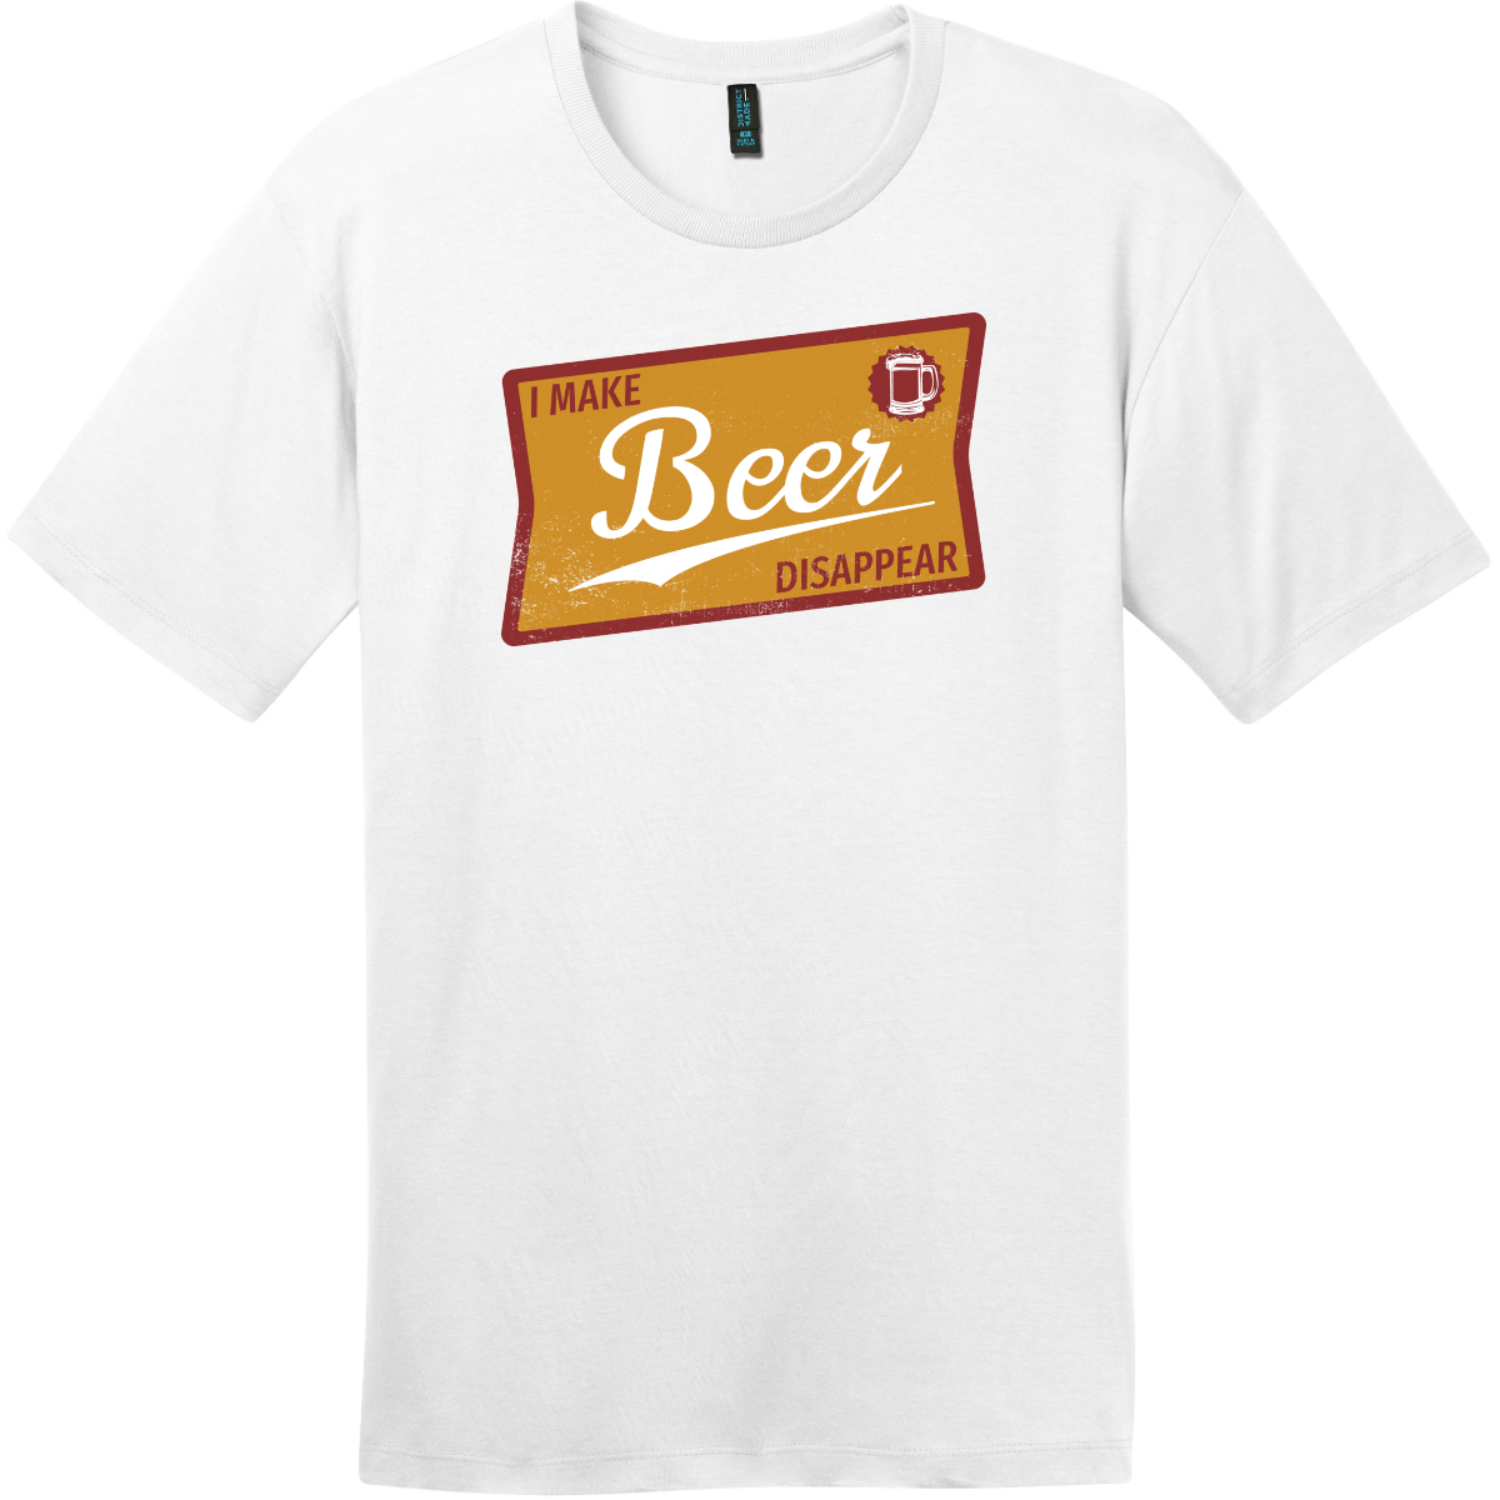 I Make Beer Disappear Vintage T Shirt Bright White District Perfect Weight Tee DT104